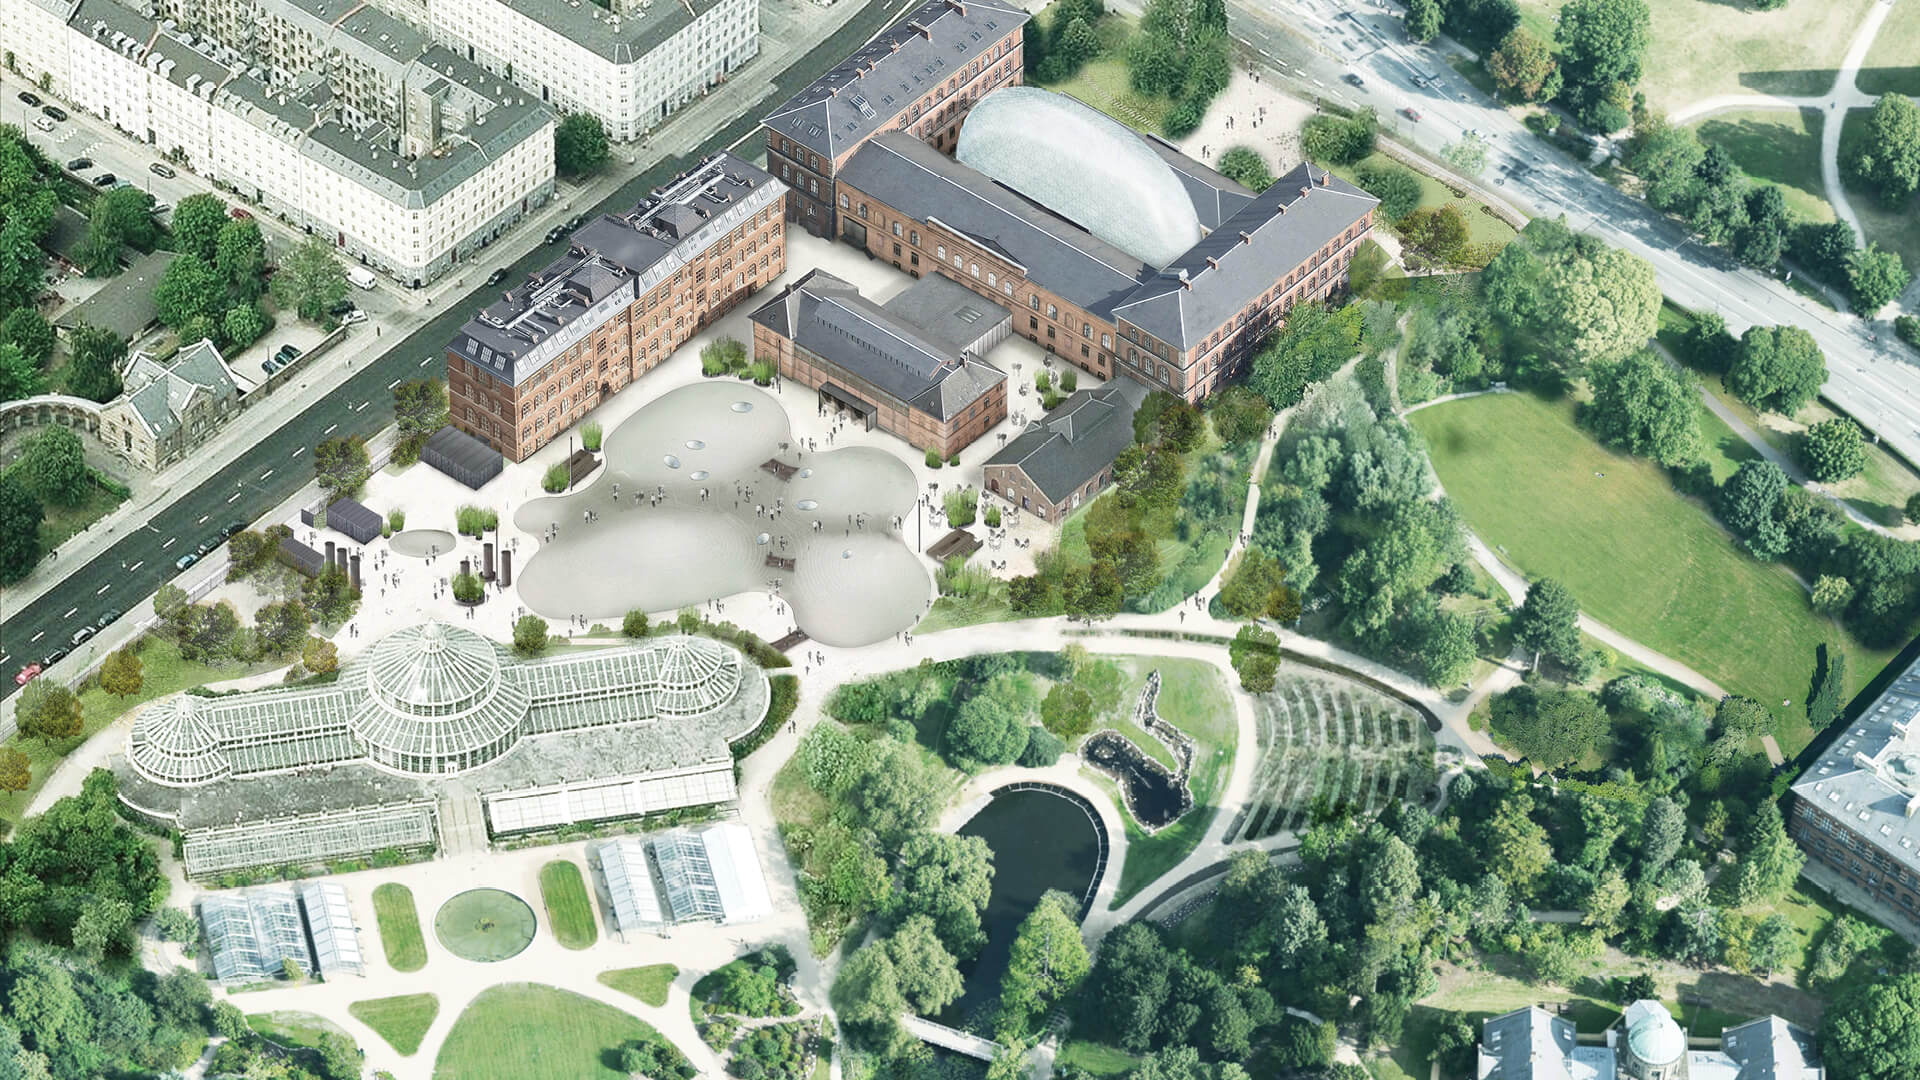 The new Natural History Museum of Denmark is a subterranean wonderland